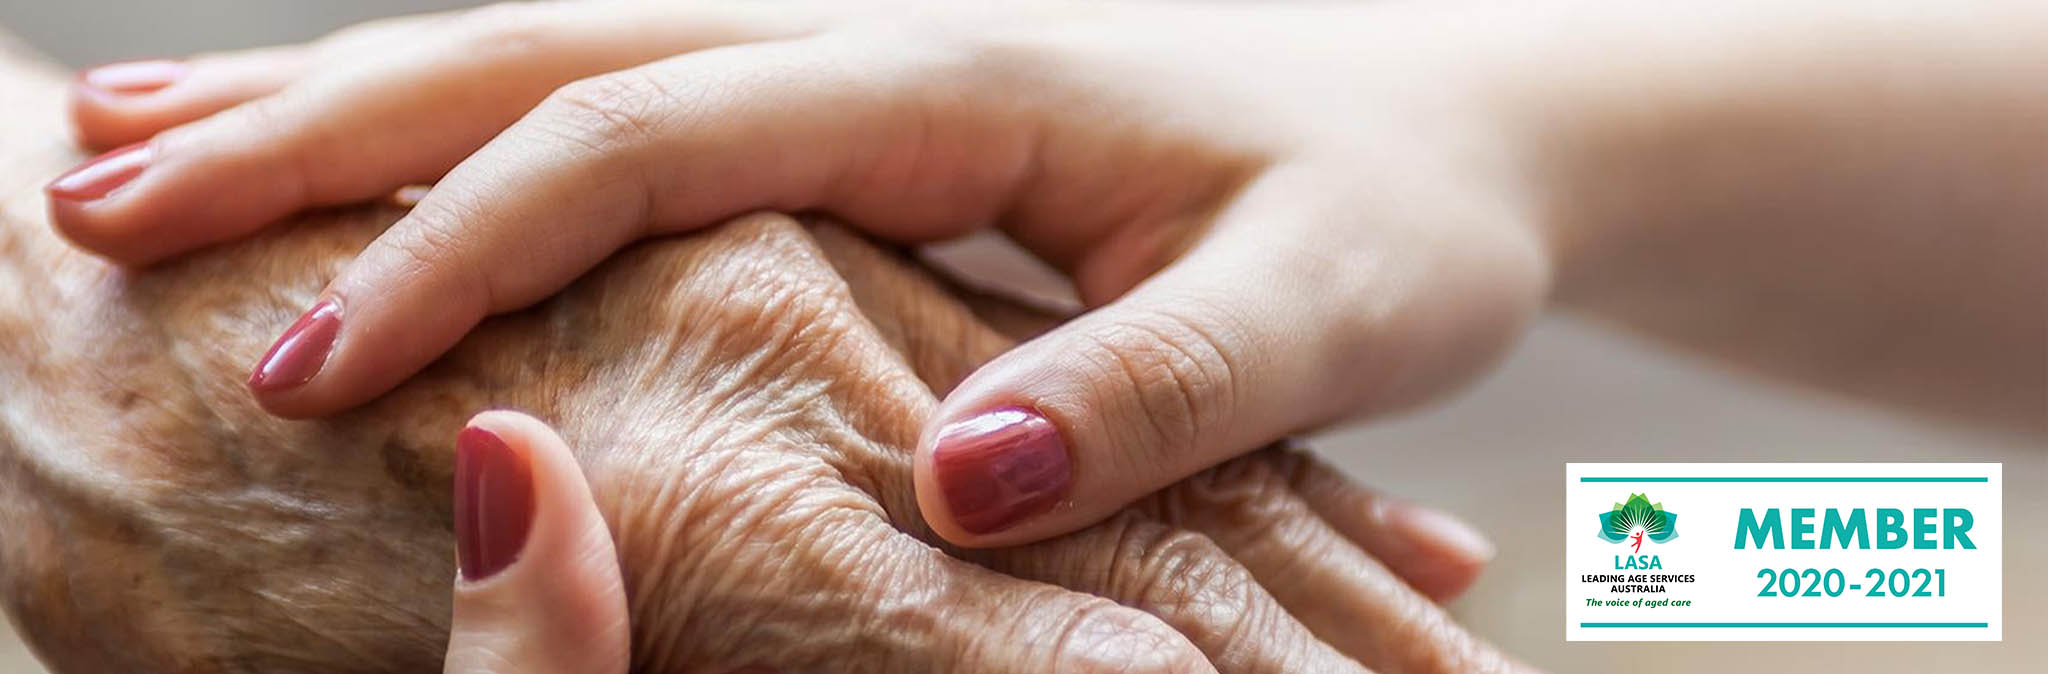 elderly hands being held by a caring hand